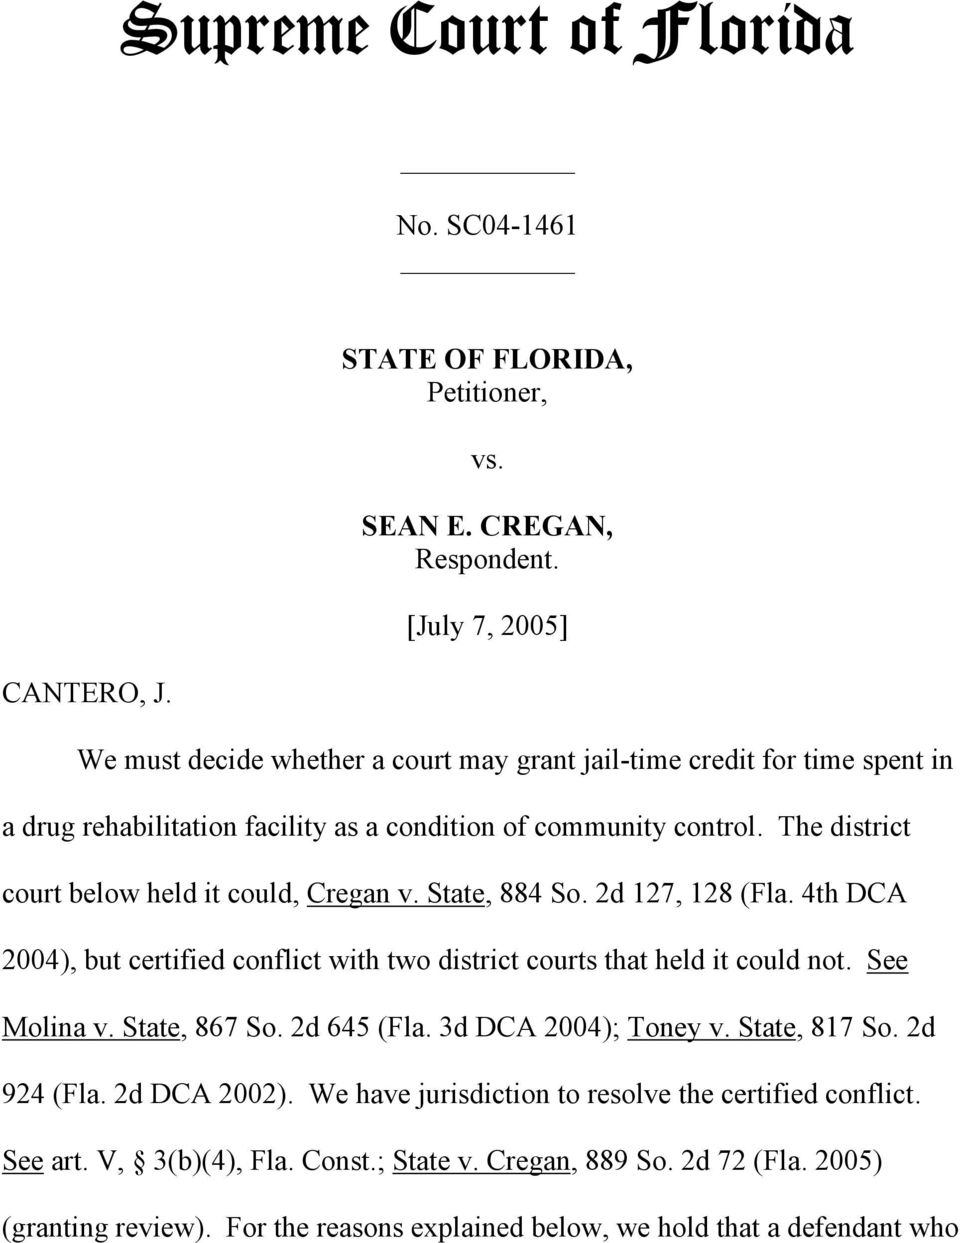 The district court below held it could, Cregan v. State, 884 So. 2d 127, 128 (Fla. 4th DCA 2004), but certified conflict with two district courts that held it could not. See Molina v.